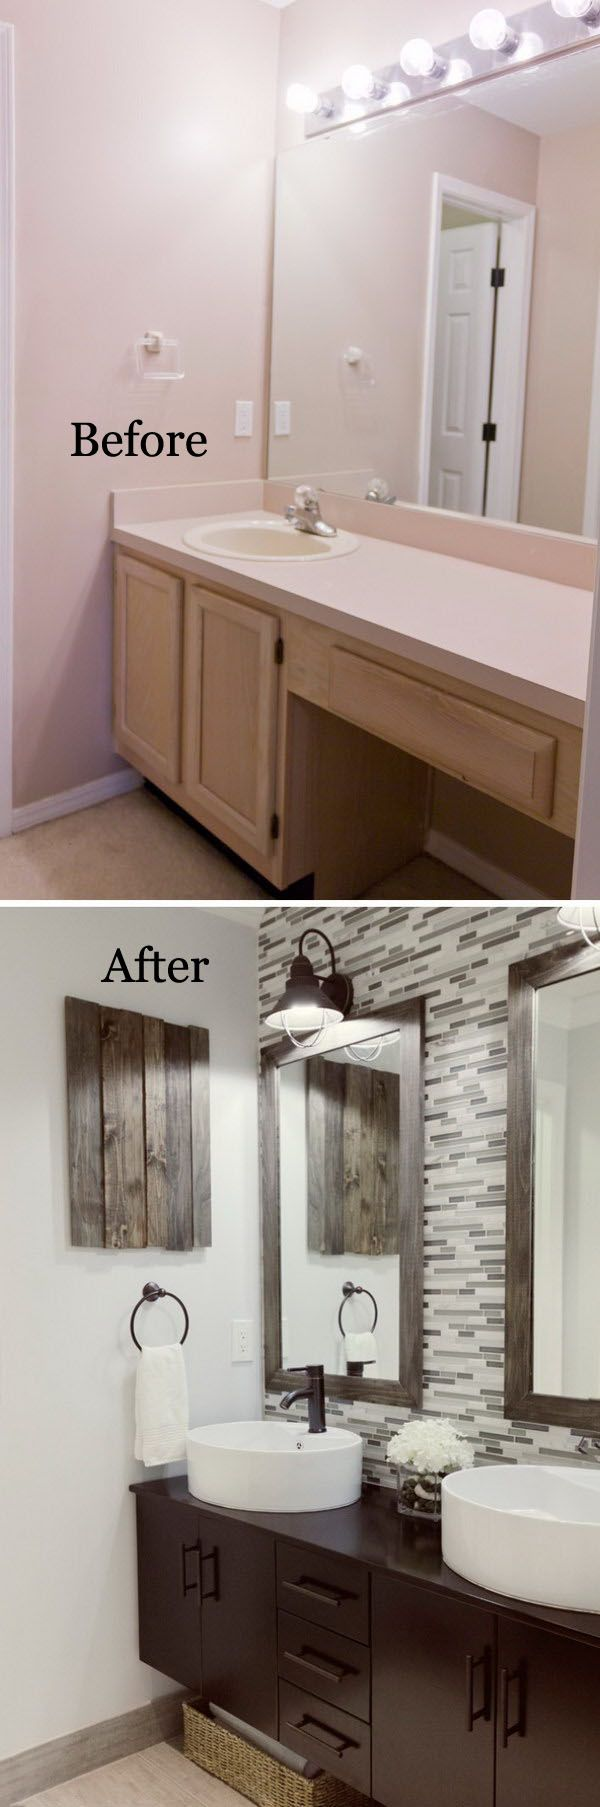 best 25+ redo mirror ideas on pinterest | bathroom mirror redo